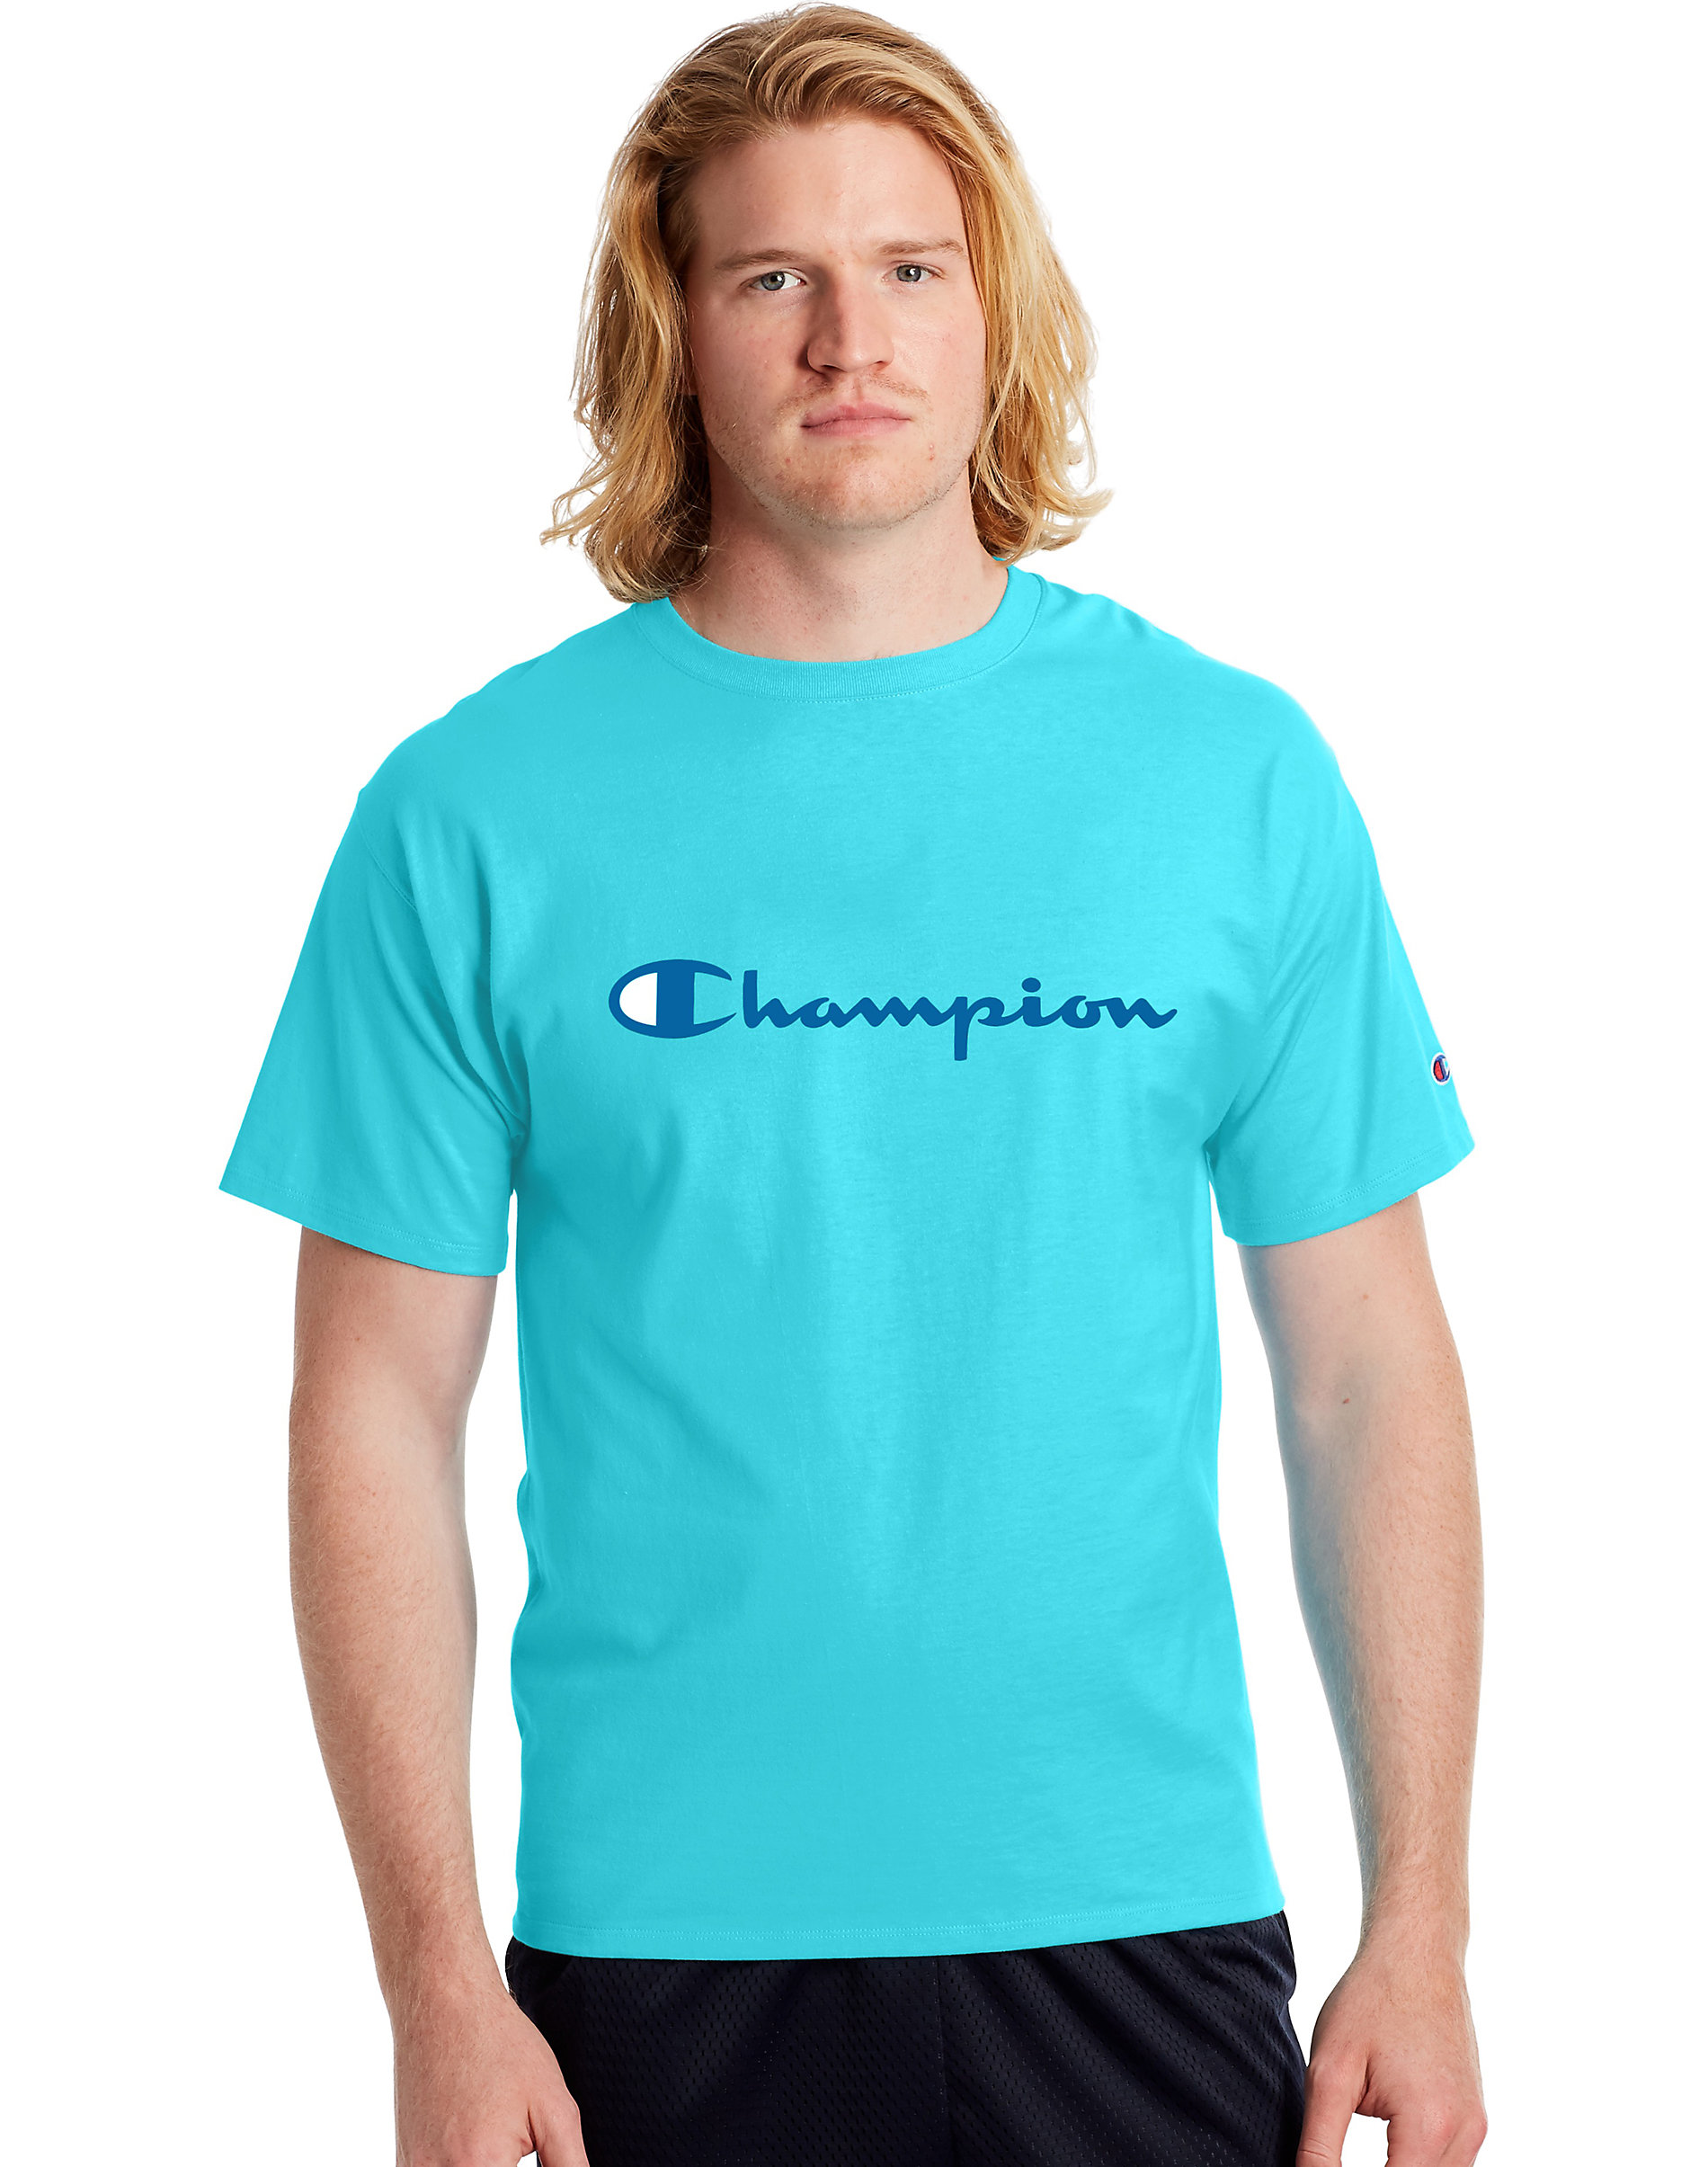 T-Shirt Mens Champion Jersey Tee Classic Script Logo Athletic Fit 100/% Cotton